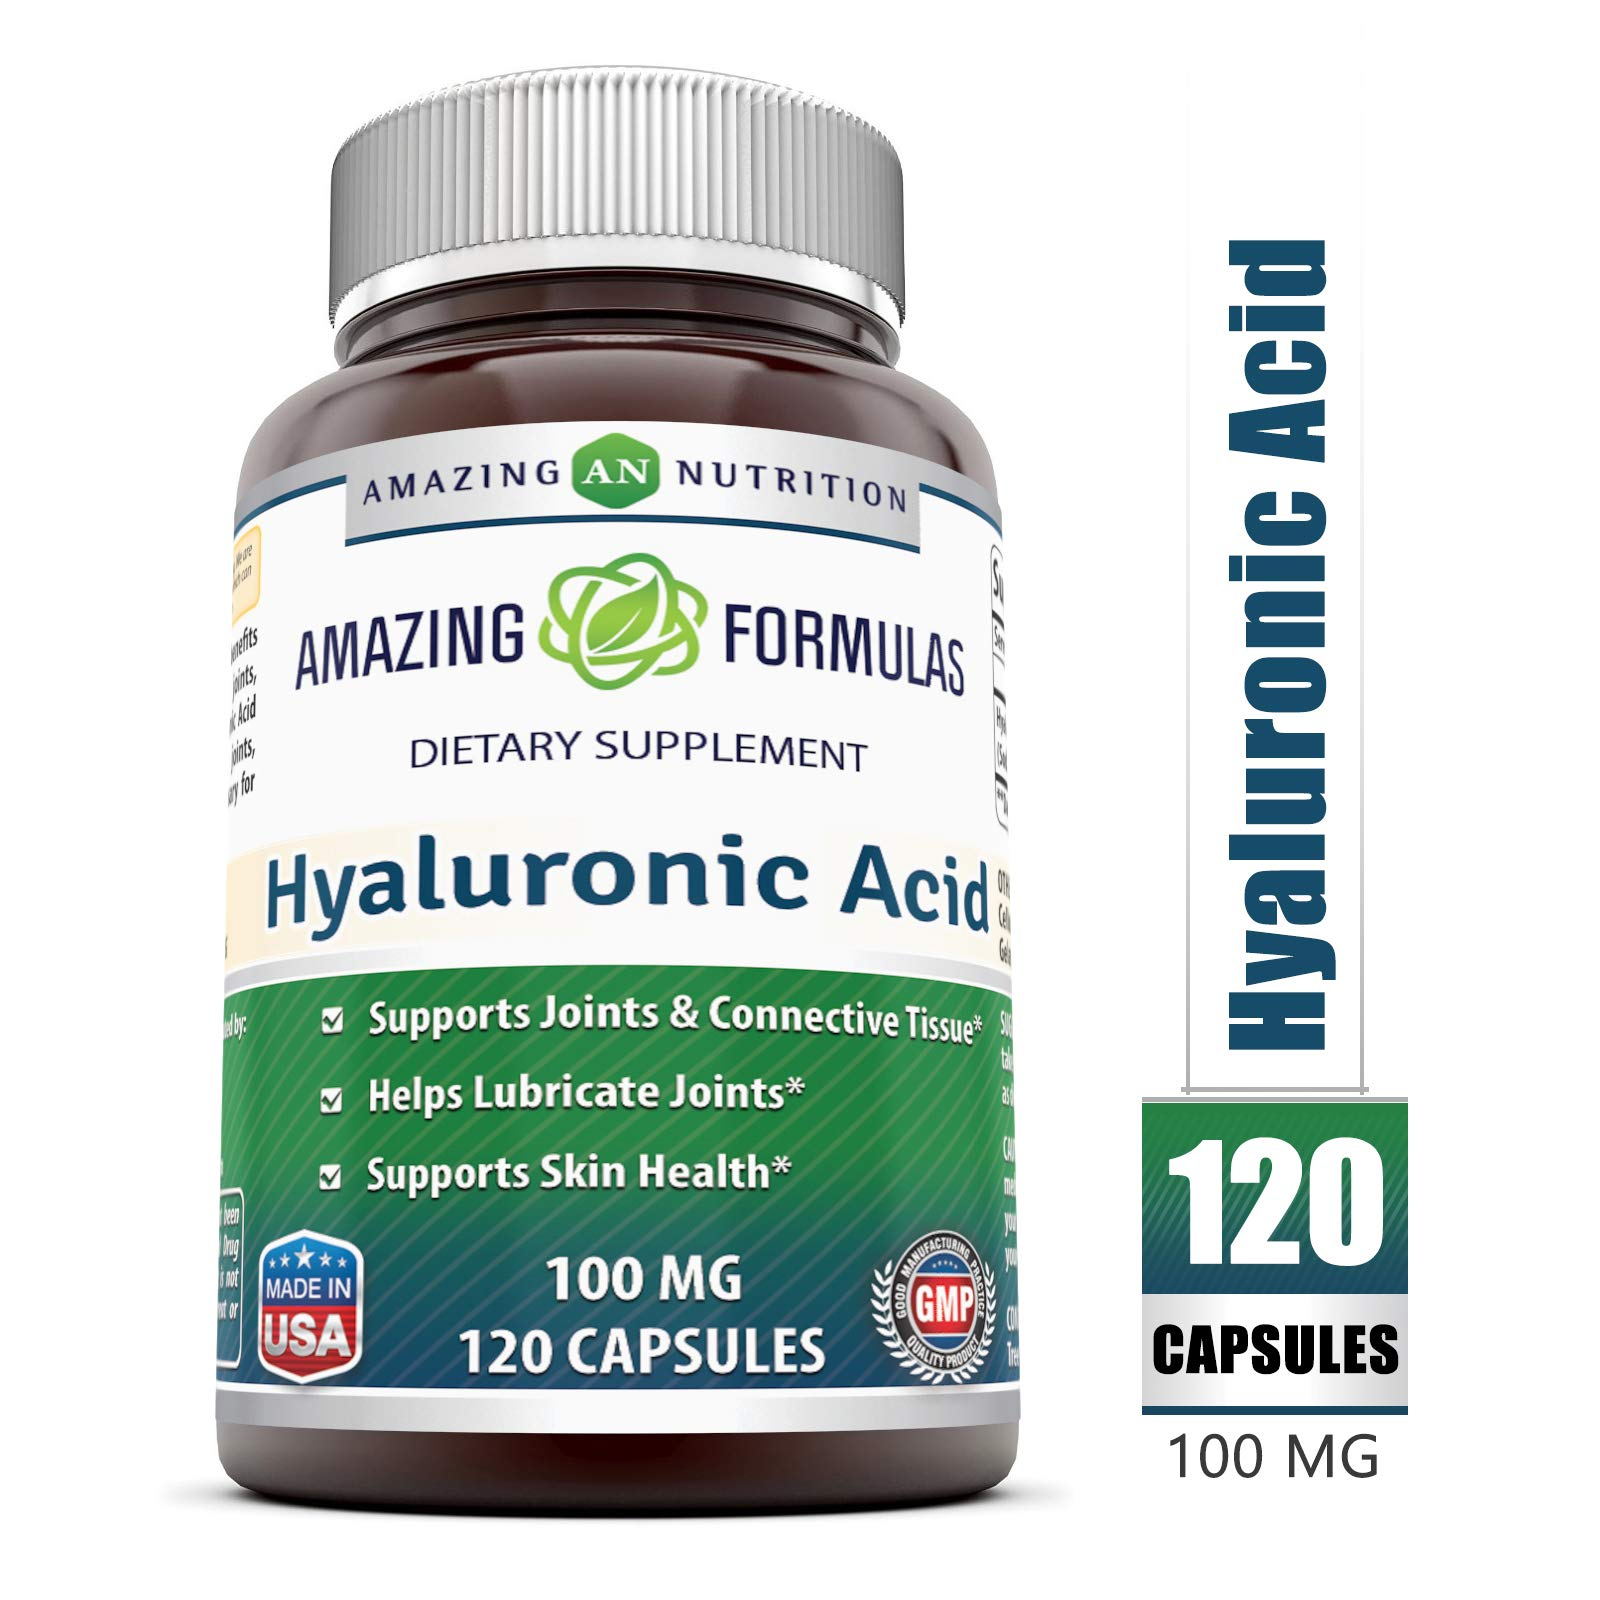 Amazing Formulas Hyaluronic Acid 100 mg 120 Capsules - Support Healthy Connective Tissue and Joints - Promote Youthful Healthy Skin by Amazing Nutrition